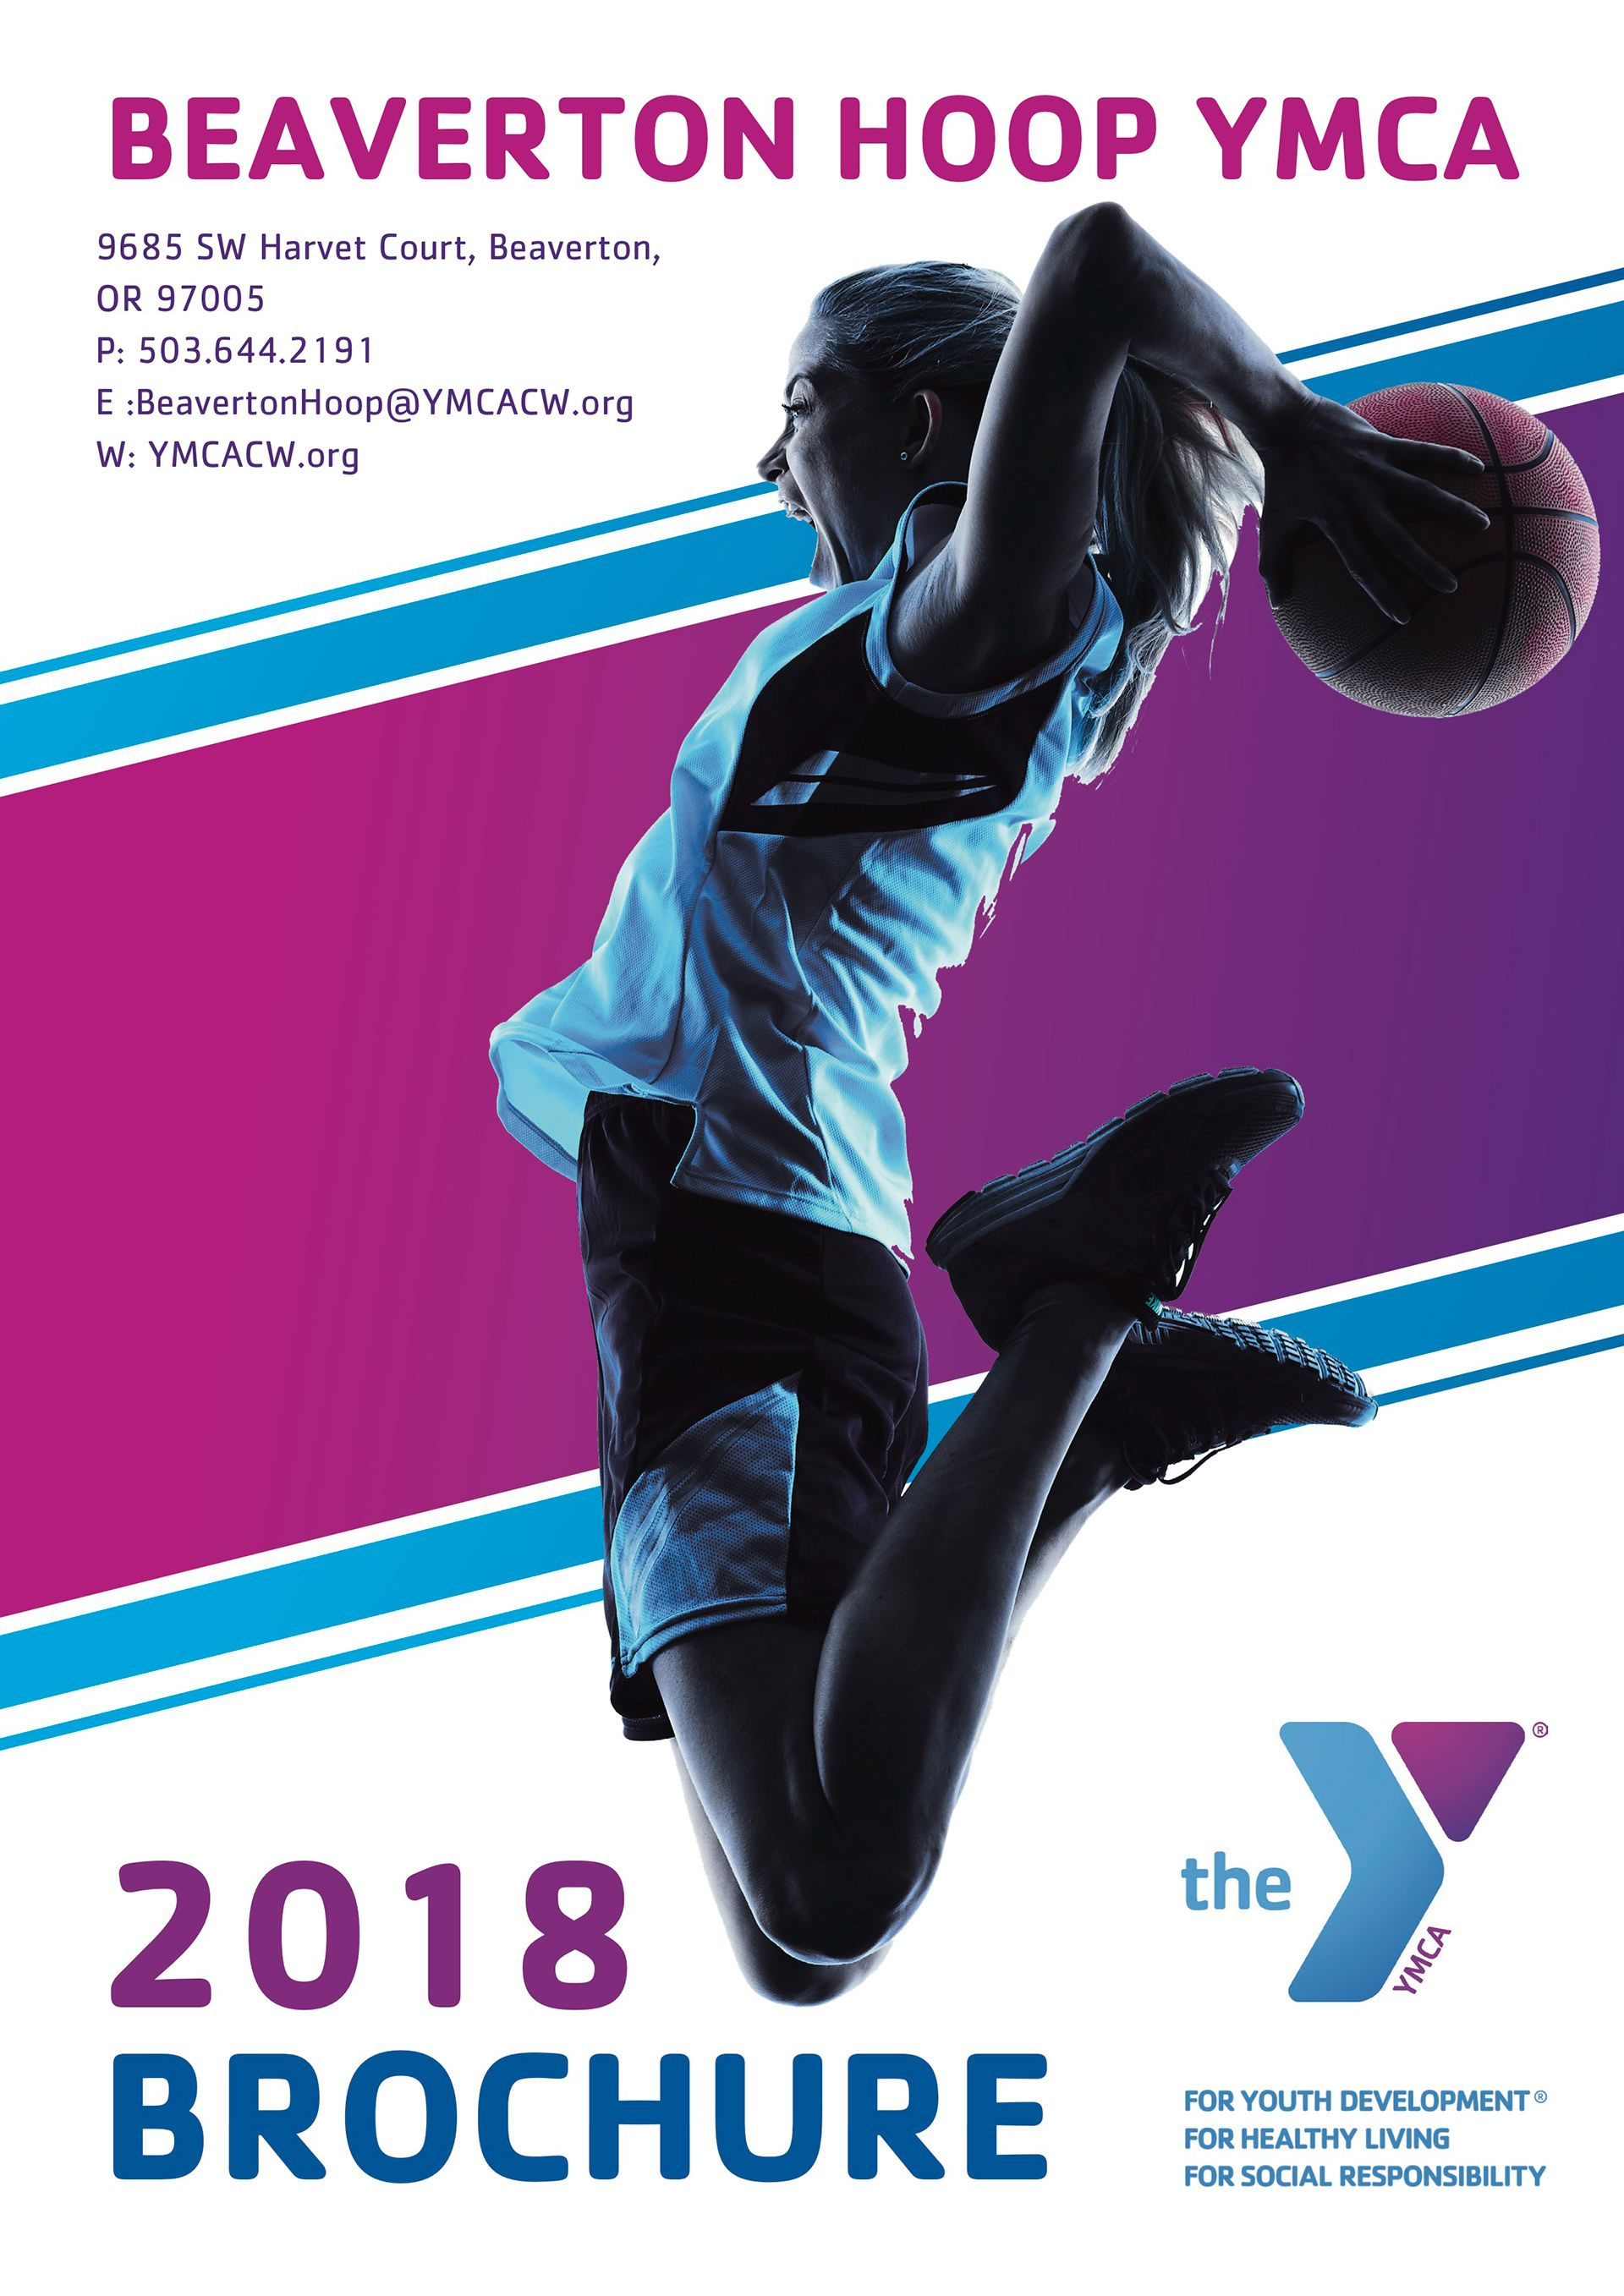 Concept Flyer And Poster Designs Brochure Was Never Printed Marketing Poster Ymca Brochure